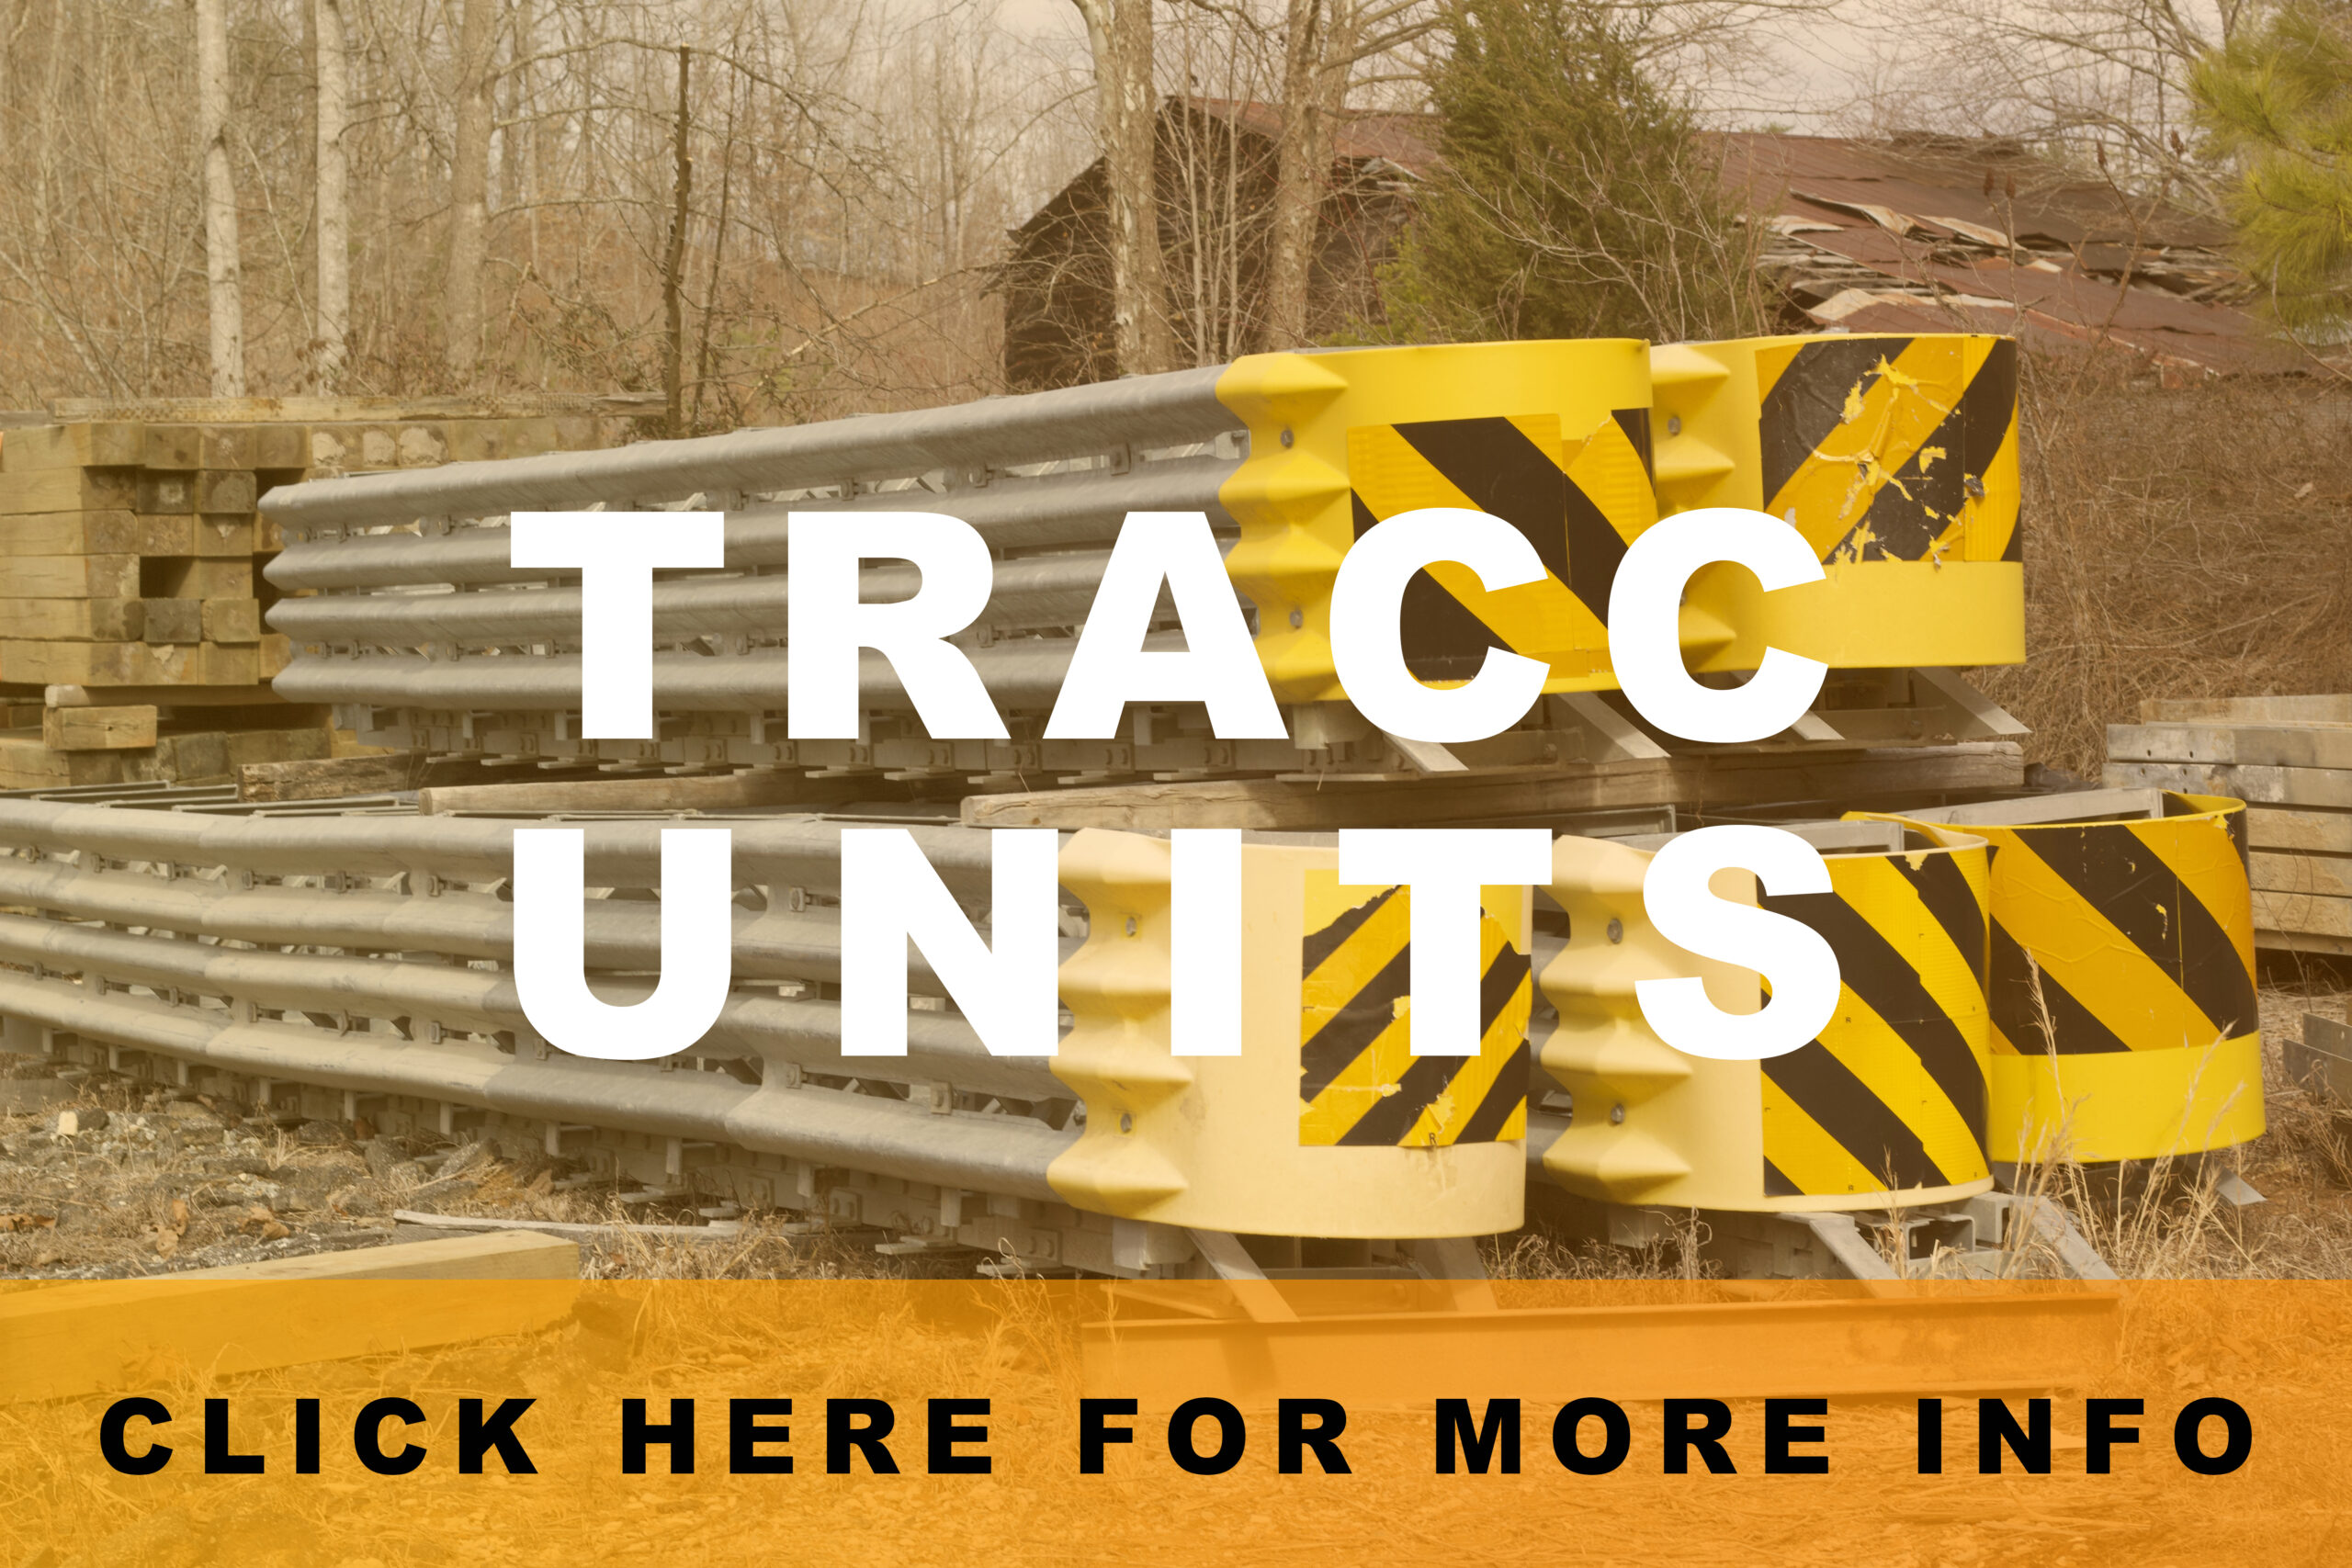 TRACC UNITS FOR SALE